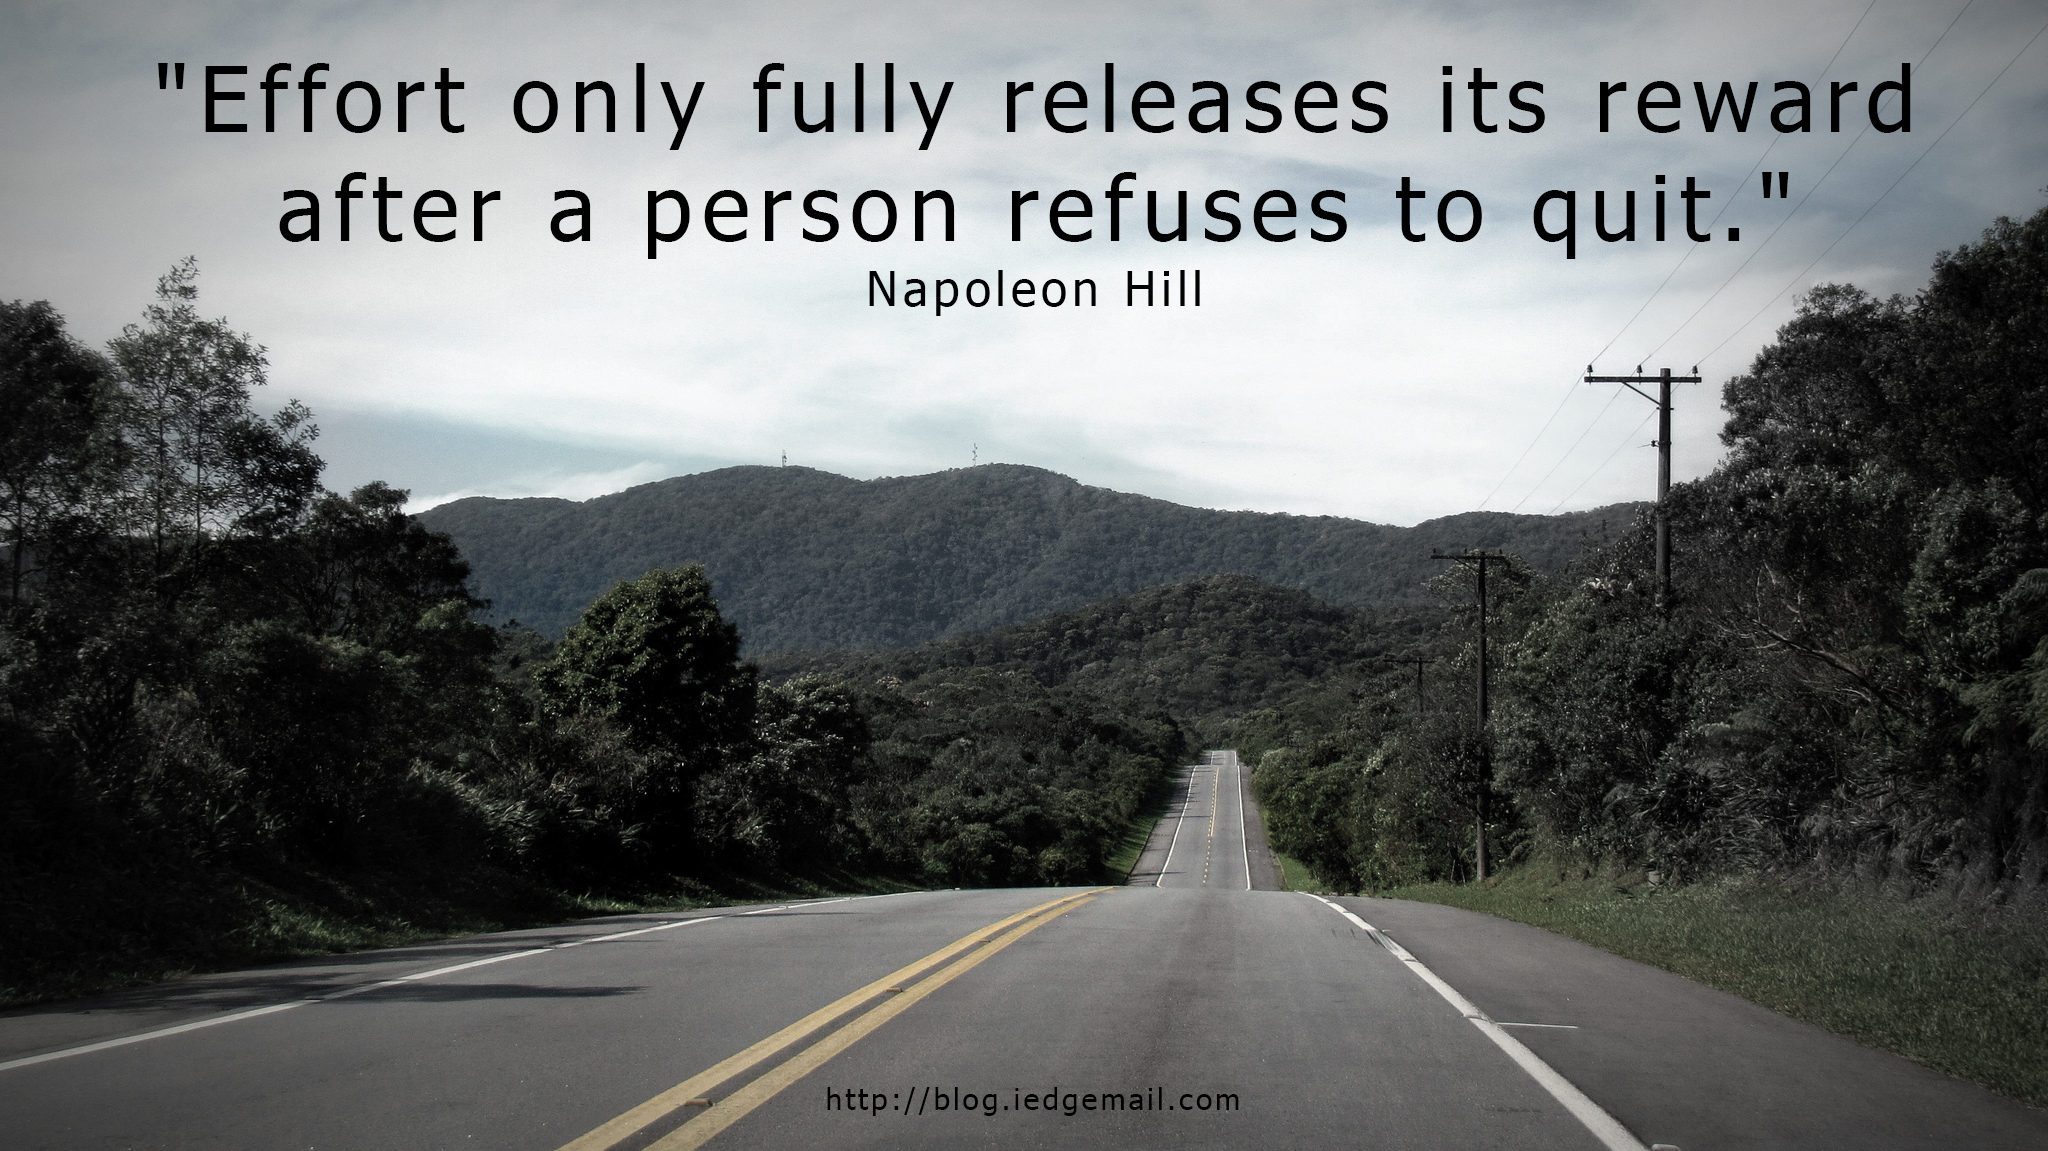 """""""Effort only fully releases its reward after a person refuses to quit."""" - Napoleon Hill"""